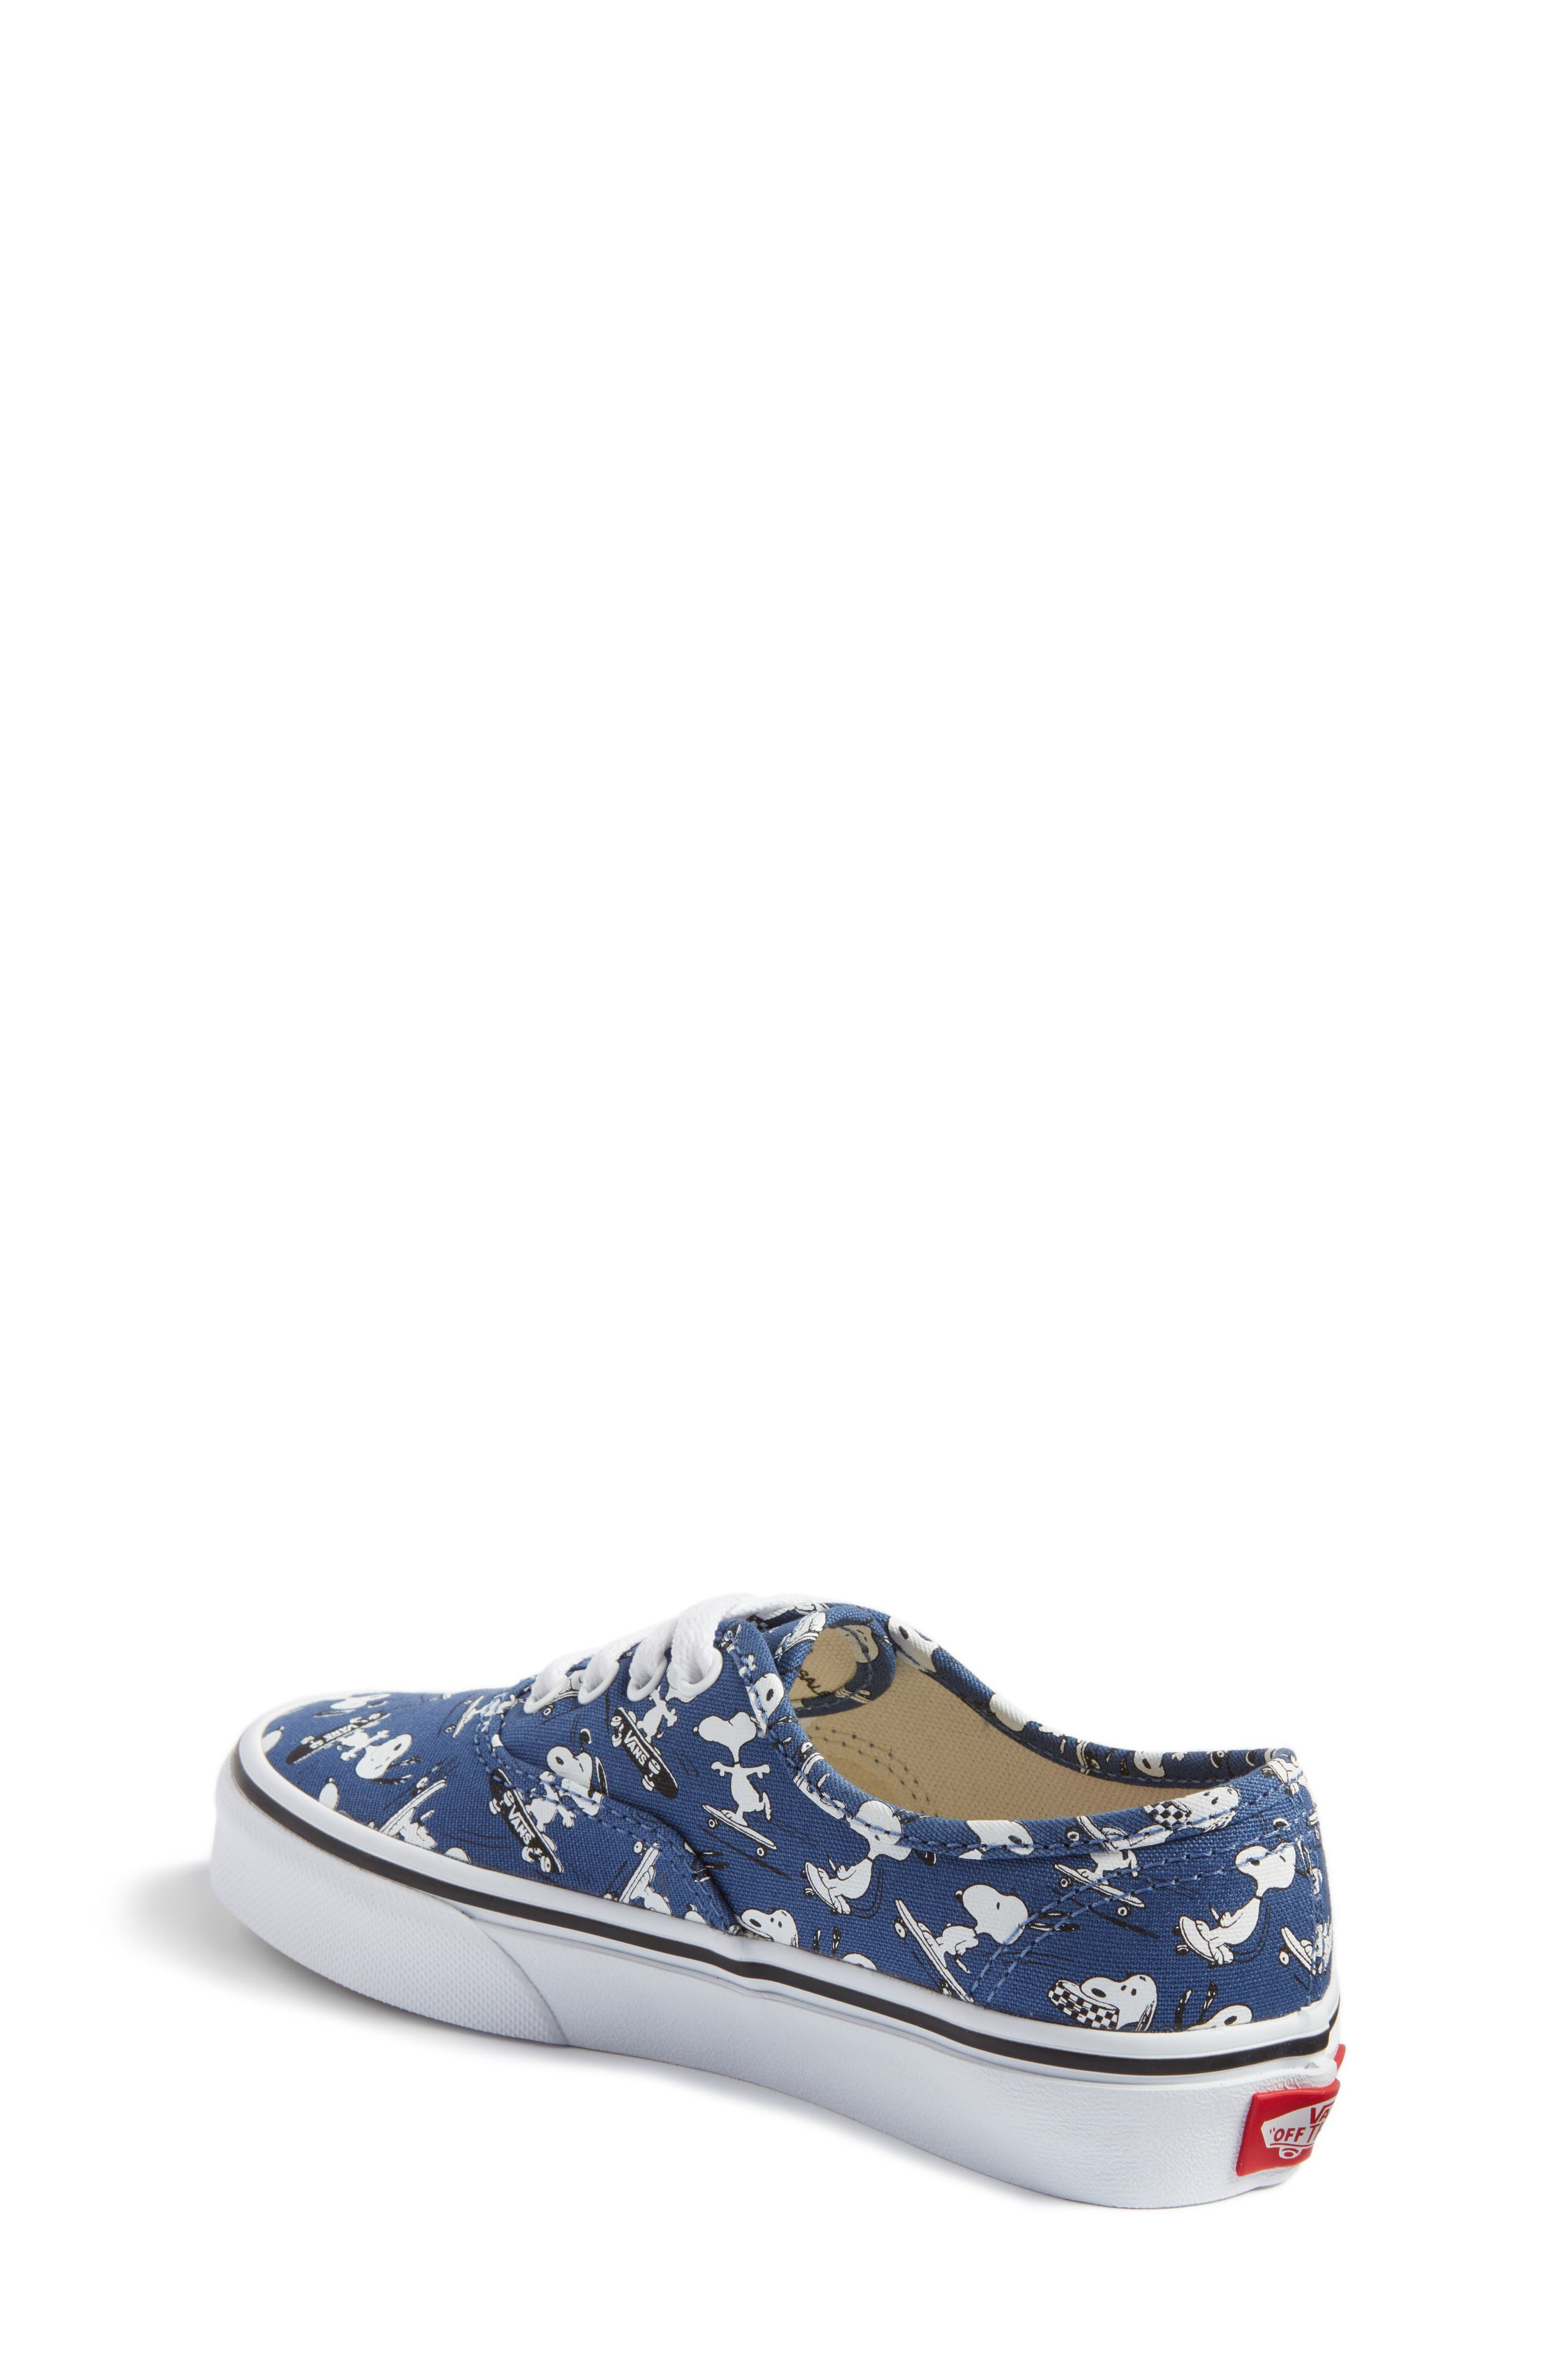 x Peanuts Authentic Sneaker,                             Alternate thumbnail 2, color,                             400